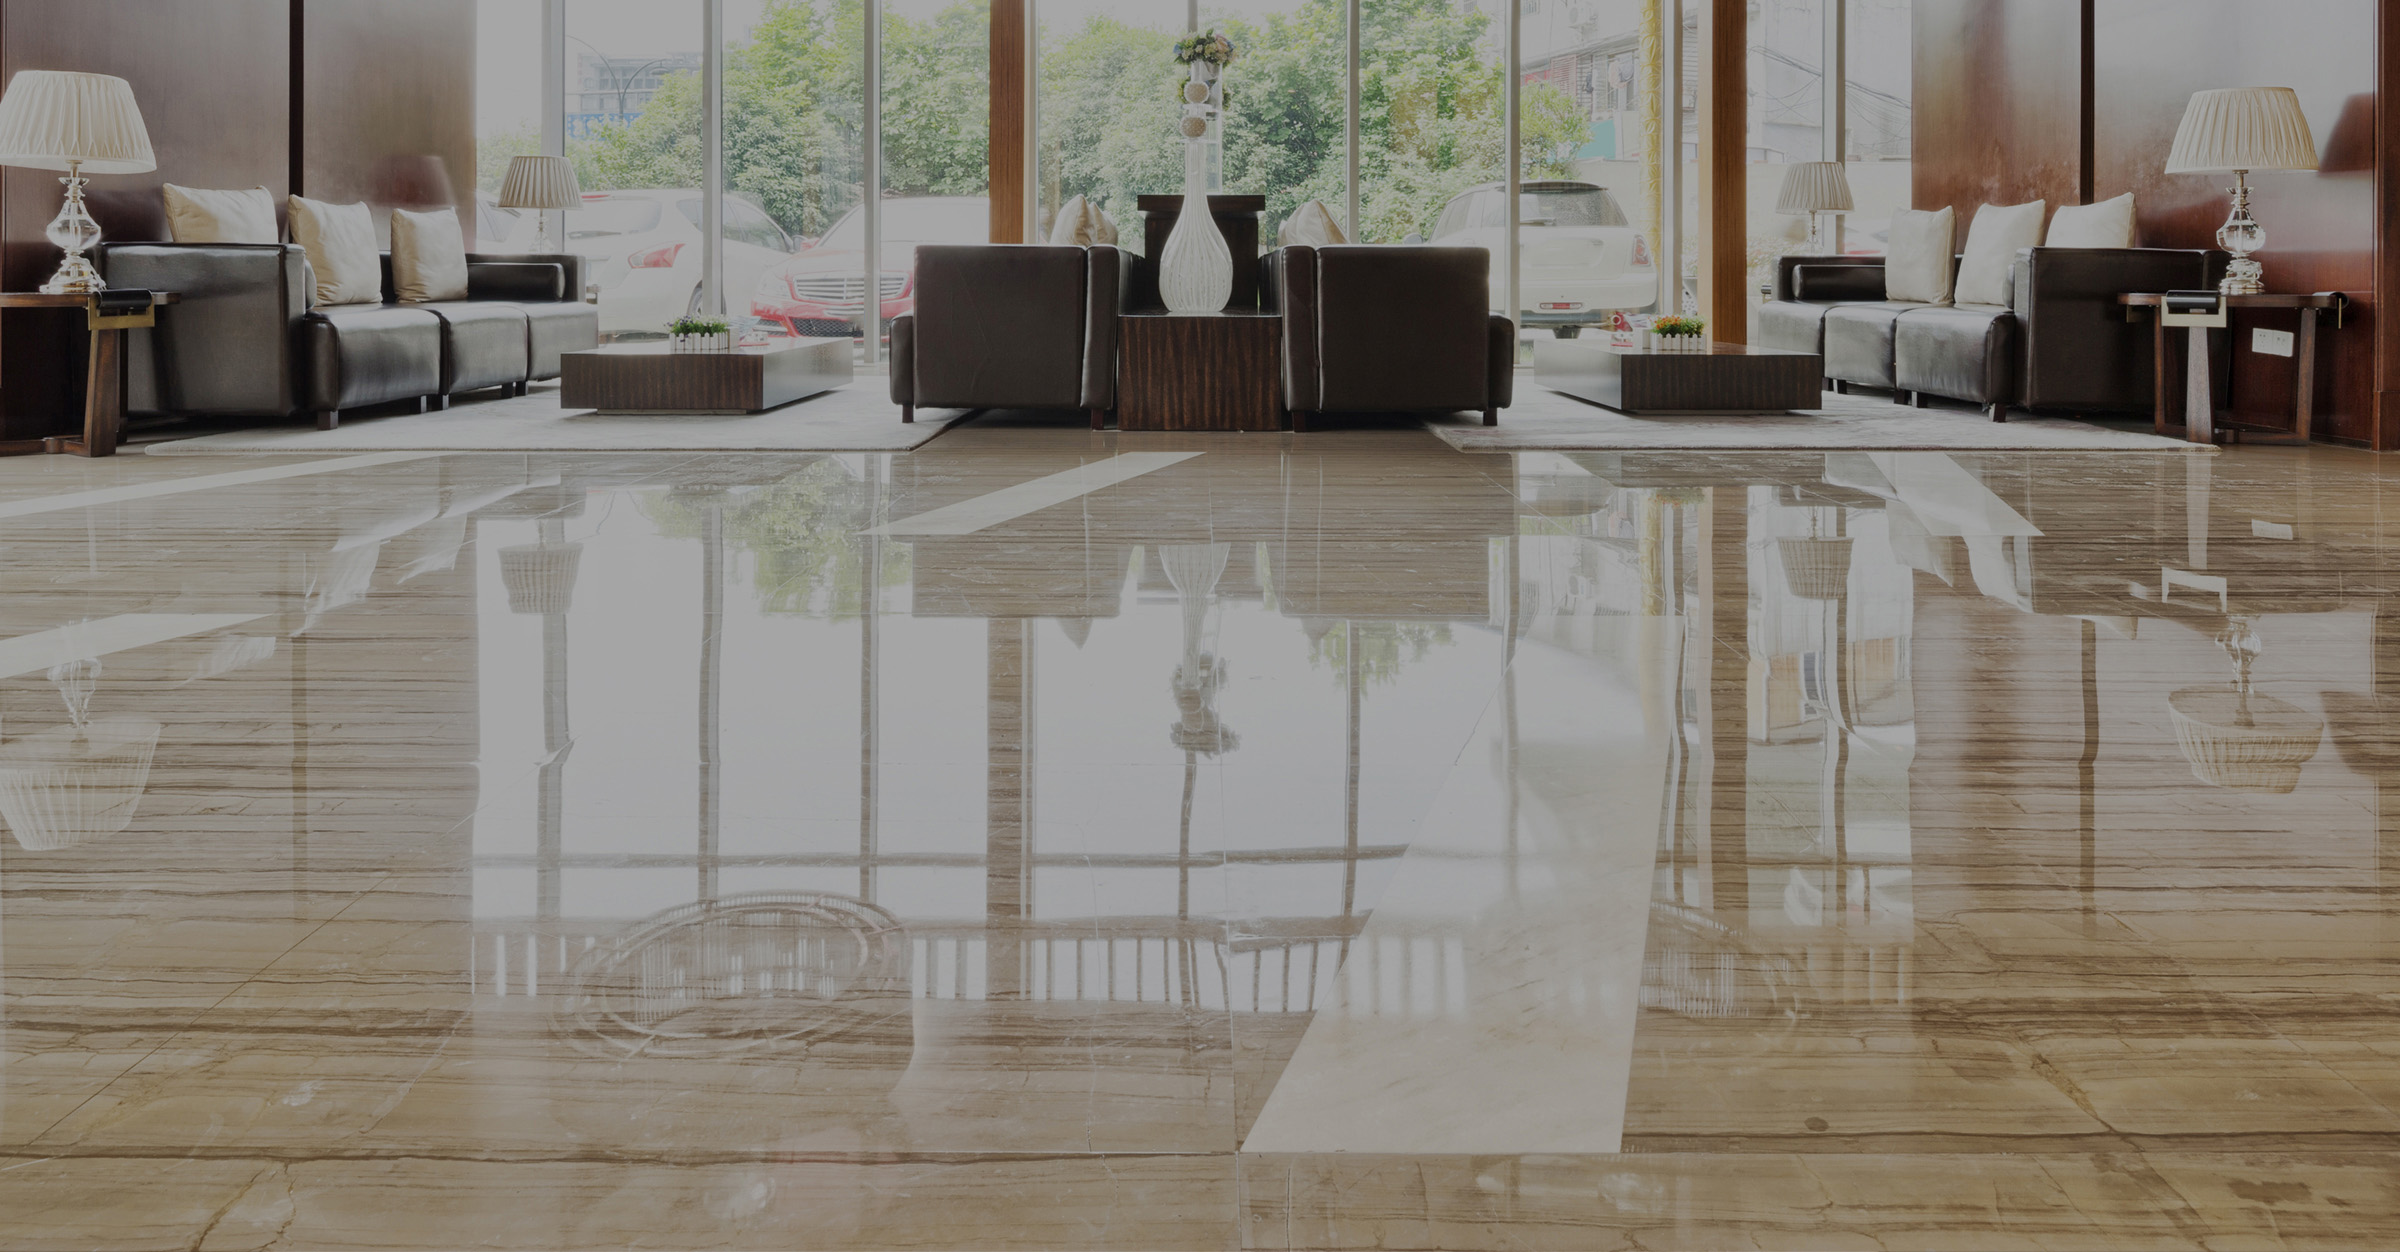 Multi Clean Commercial Cleaning Services | Tulsa, OK | 918 523 8300